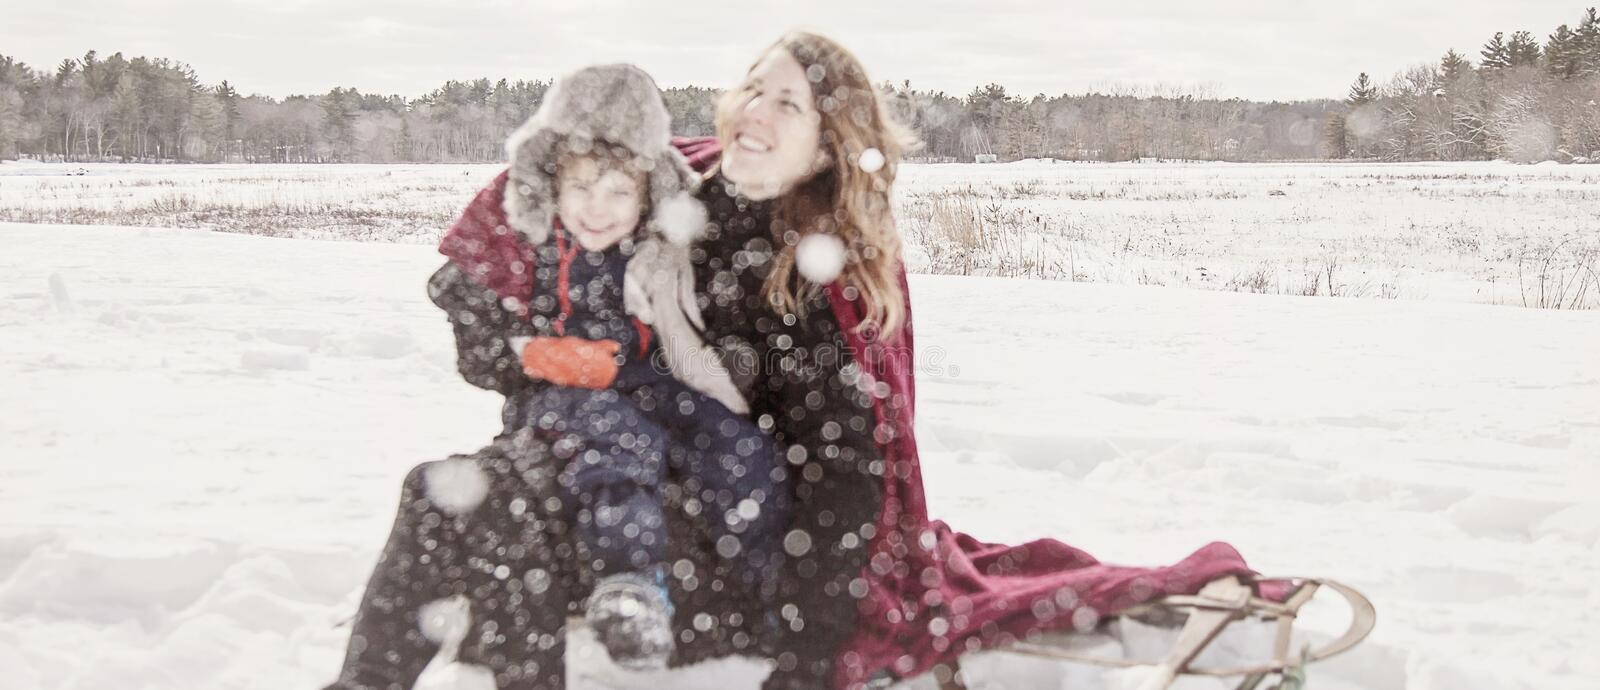 Mother and son playing in snow. Snowflake bokeh blur of Mother and son outside in winter throwing /playing in snow royalty free stock images